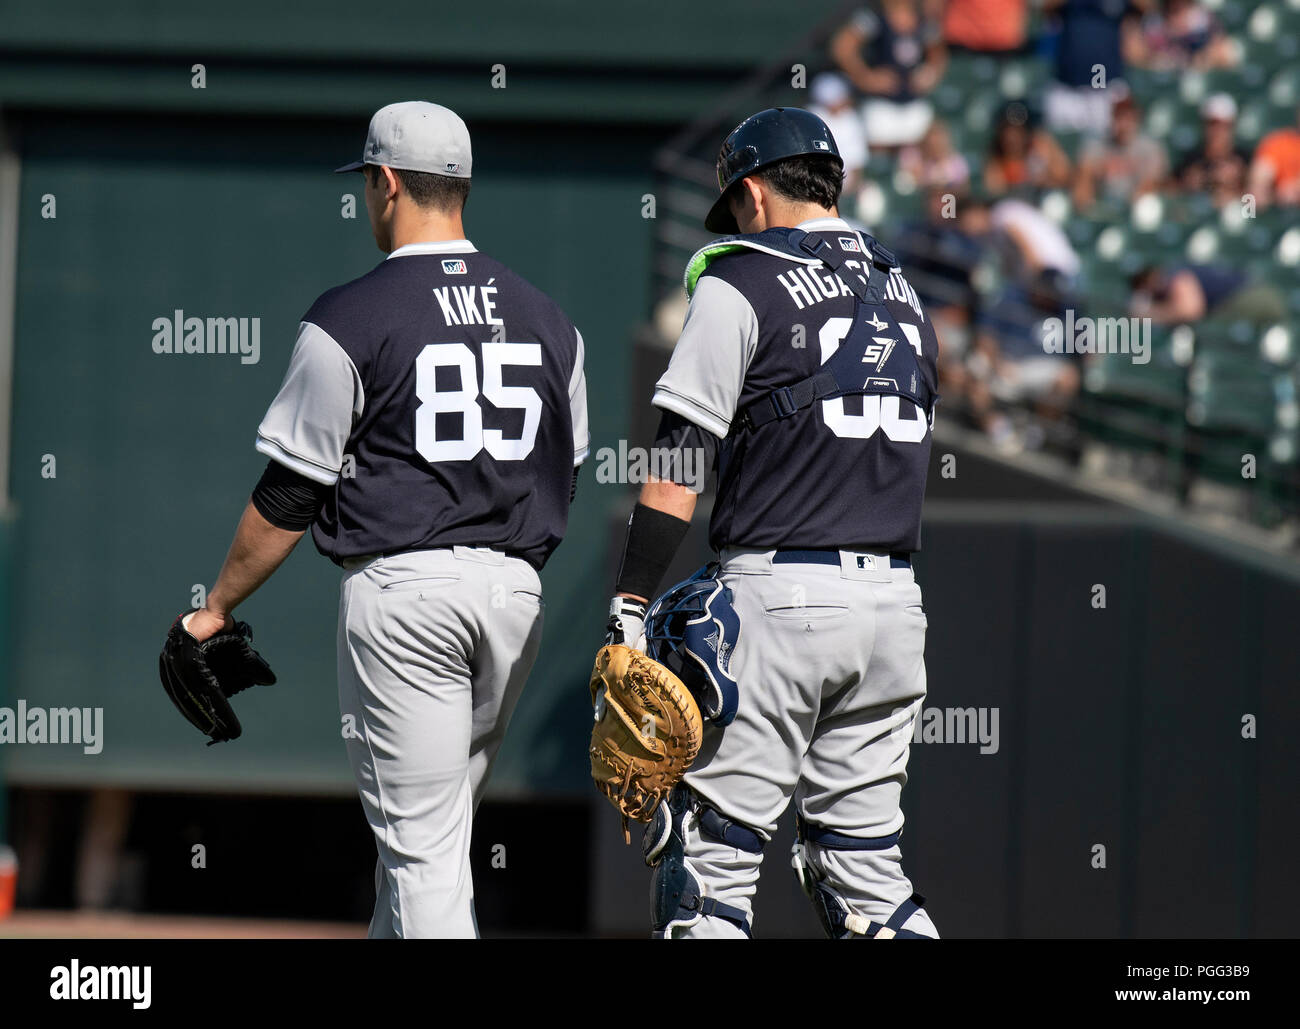 Baltimore, United States Of America. 25th Aug, 2018. New York Yankees relief pitcher Luis Cessa (85), wearing his Player's Weekend jersey and catcher Kyle Higashioka (66) walk to congratulate their teammates after their victory over the Baltimore Orioles at Oriole Park at Camden Yards in Baltimore, MD on Saturday, August 25, 2018. This is the make-up game that was postponed from June 3. The final score was 10 - 3. Credit: Ron Sachs/CNP (RESTRICTION: NO New York or New Jersey Newspapers or newspapers within a 75 mile radius of New York City) | usage worldwide Credit: dpa/Alamy Live News - Stock Image